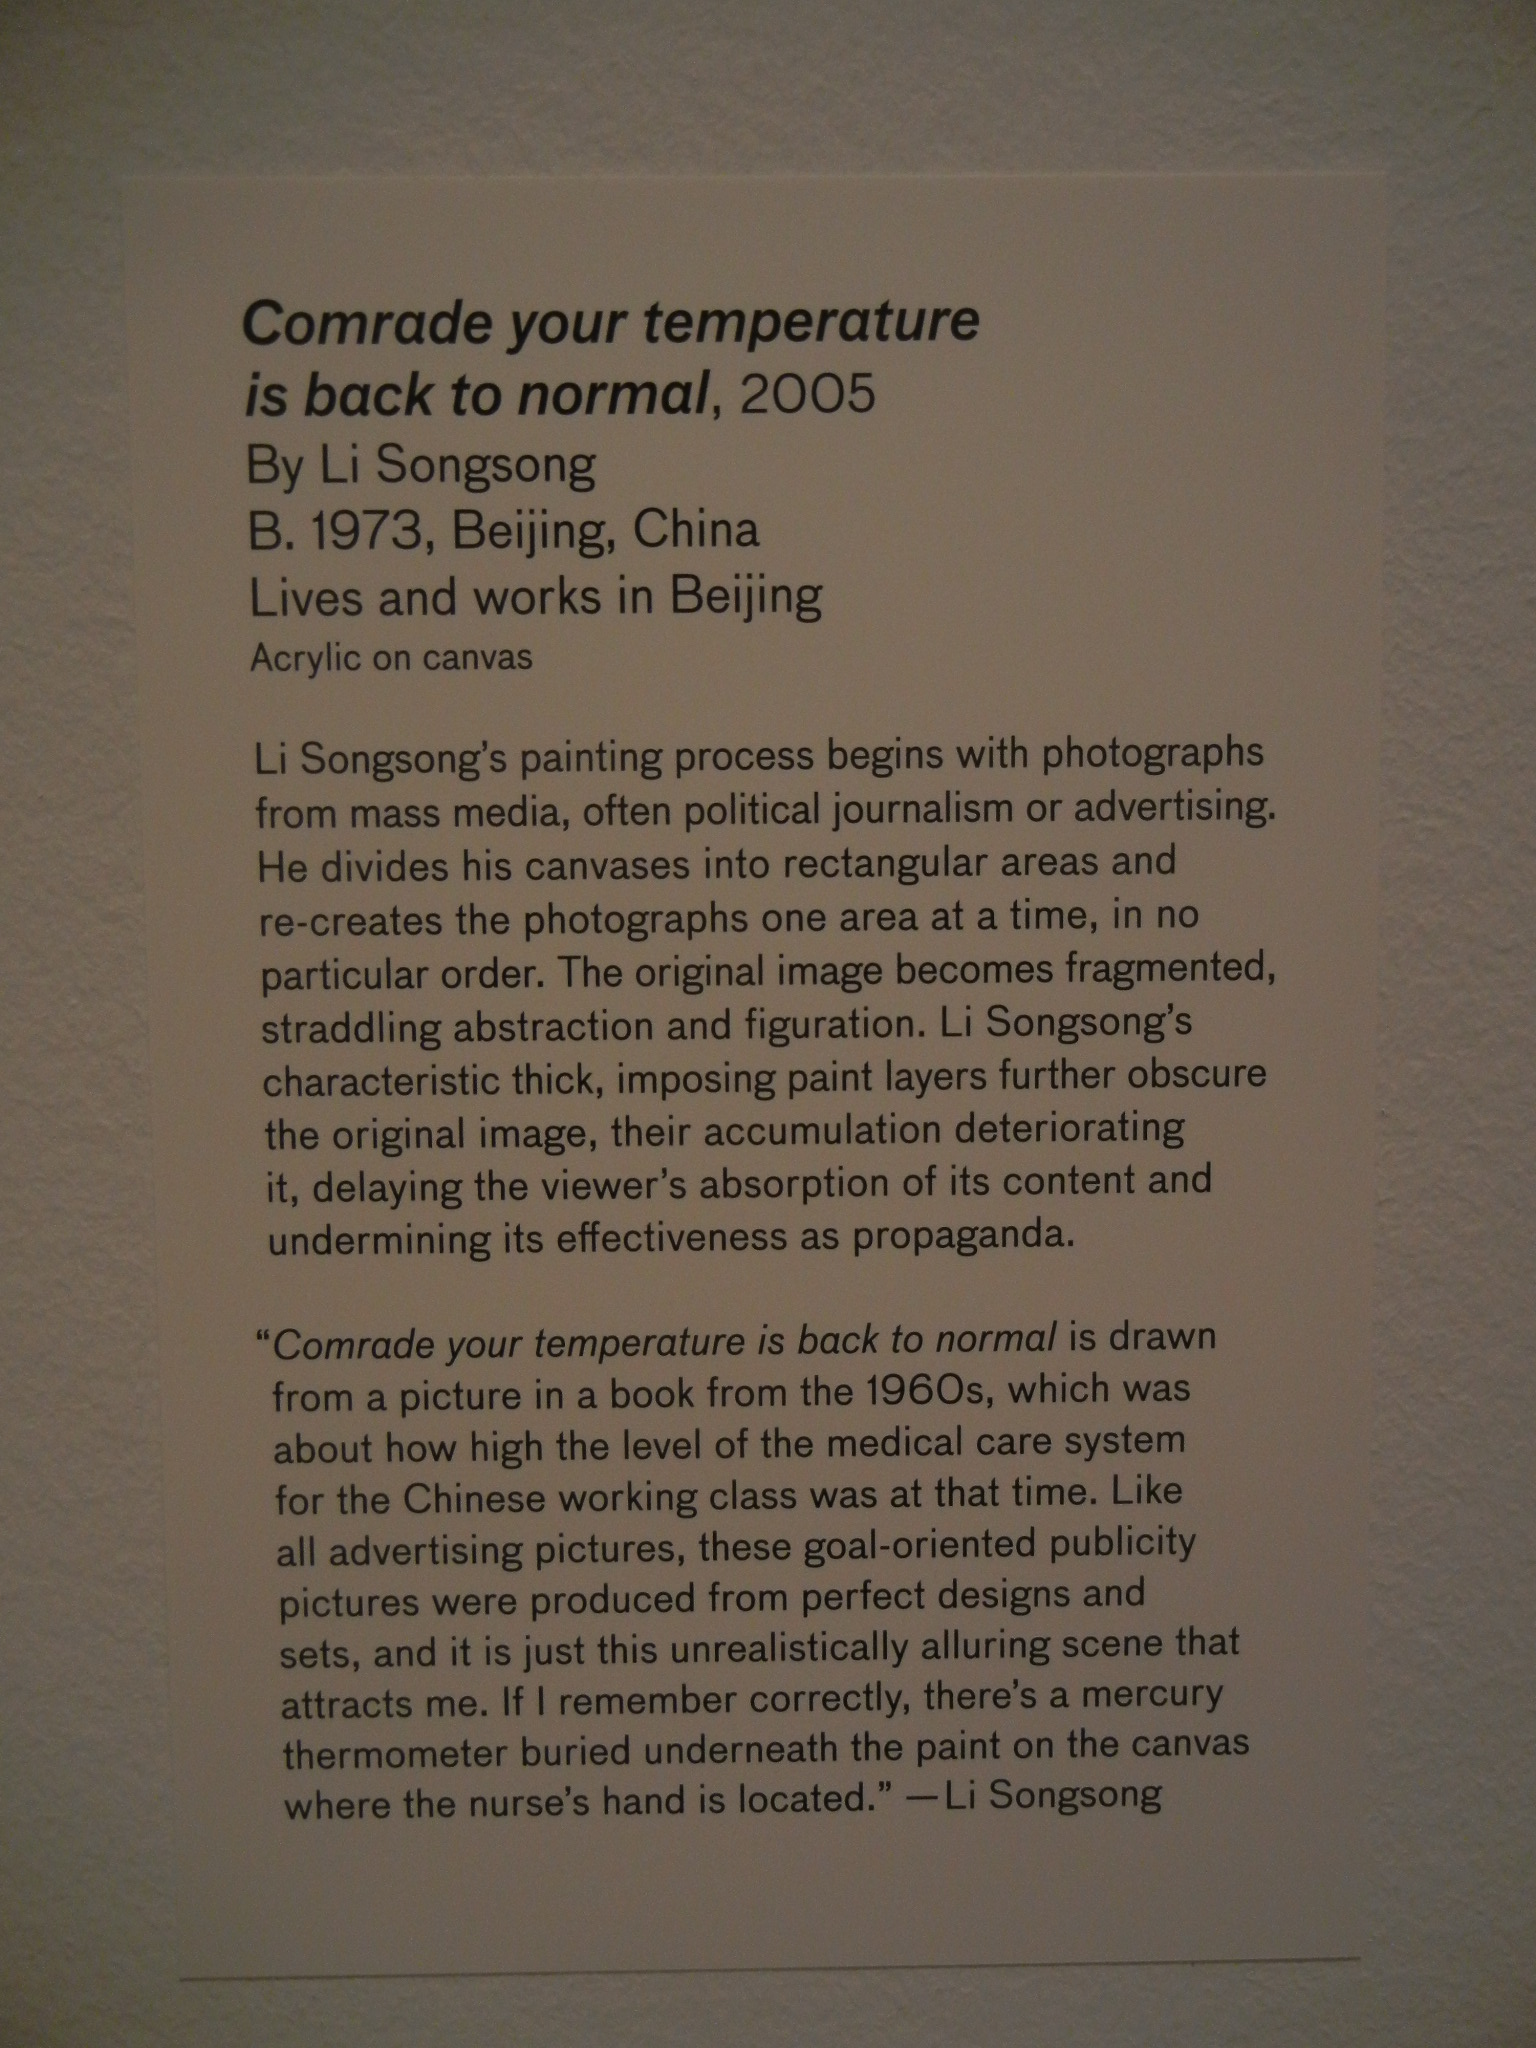 DSCN4628 _ 28 Chinese - Comrade your temperature is back to normal, 2005, Songsong LI, Asian Art Museum